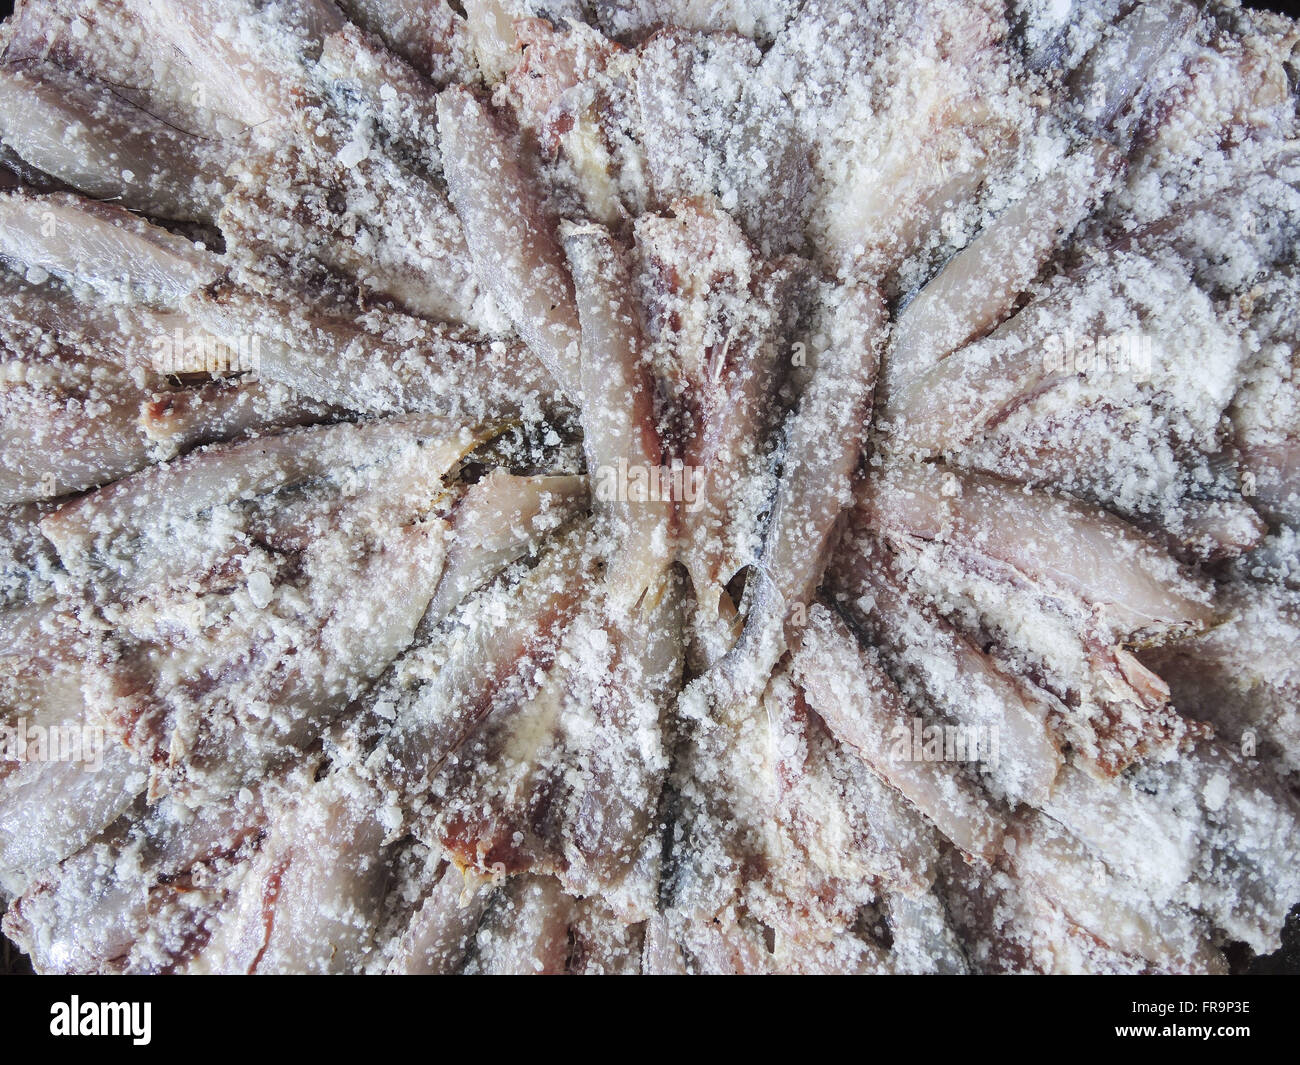 Detail of salted fish for sale in the Municipal Market - Stock Image